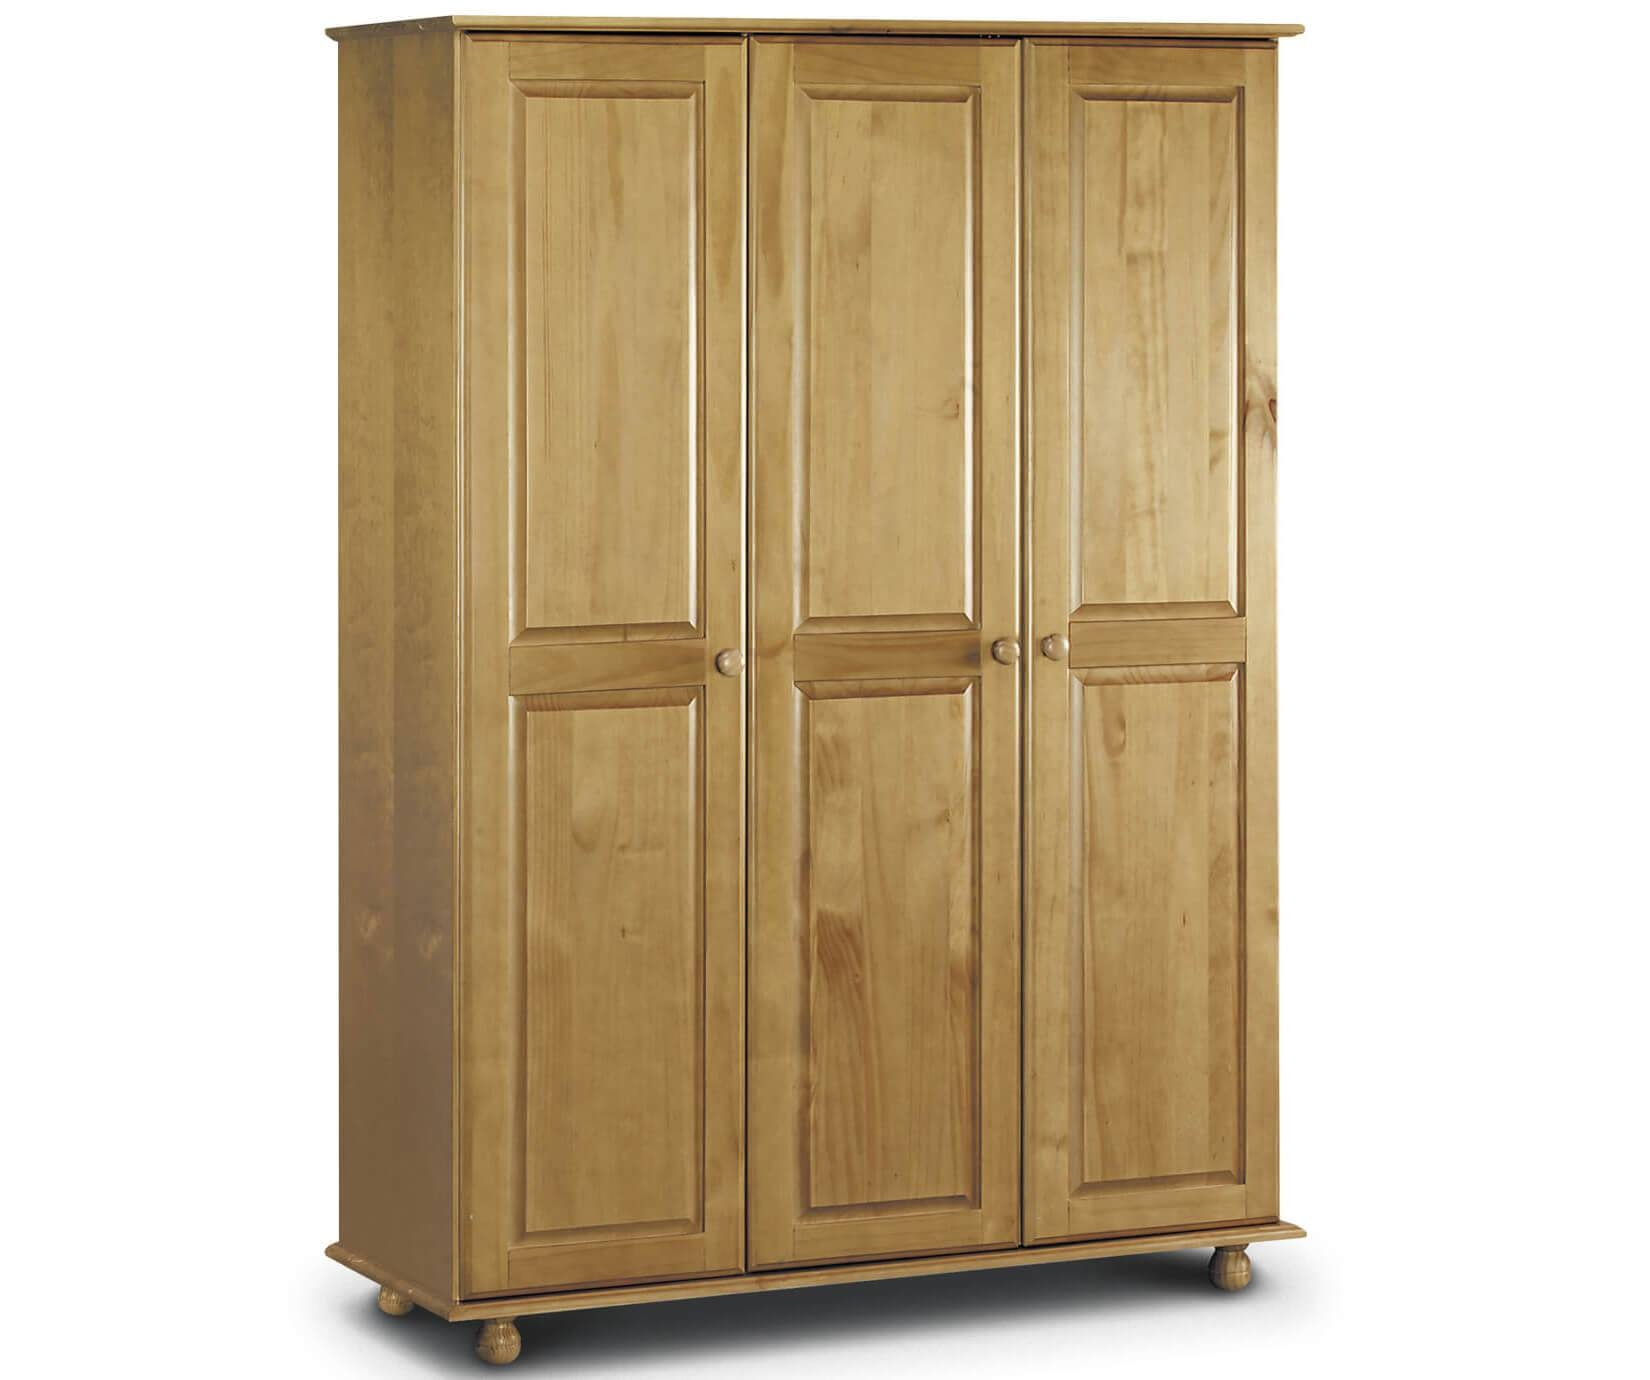 Julian Bowen Pickwick | Pickwick 3 Door Wardrobe | Bedsdirectuk for Julian Bowen Wardrobes (Image 7 of 15)